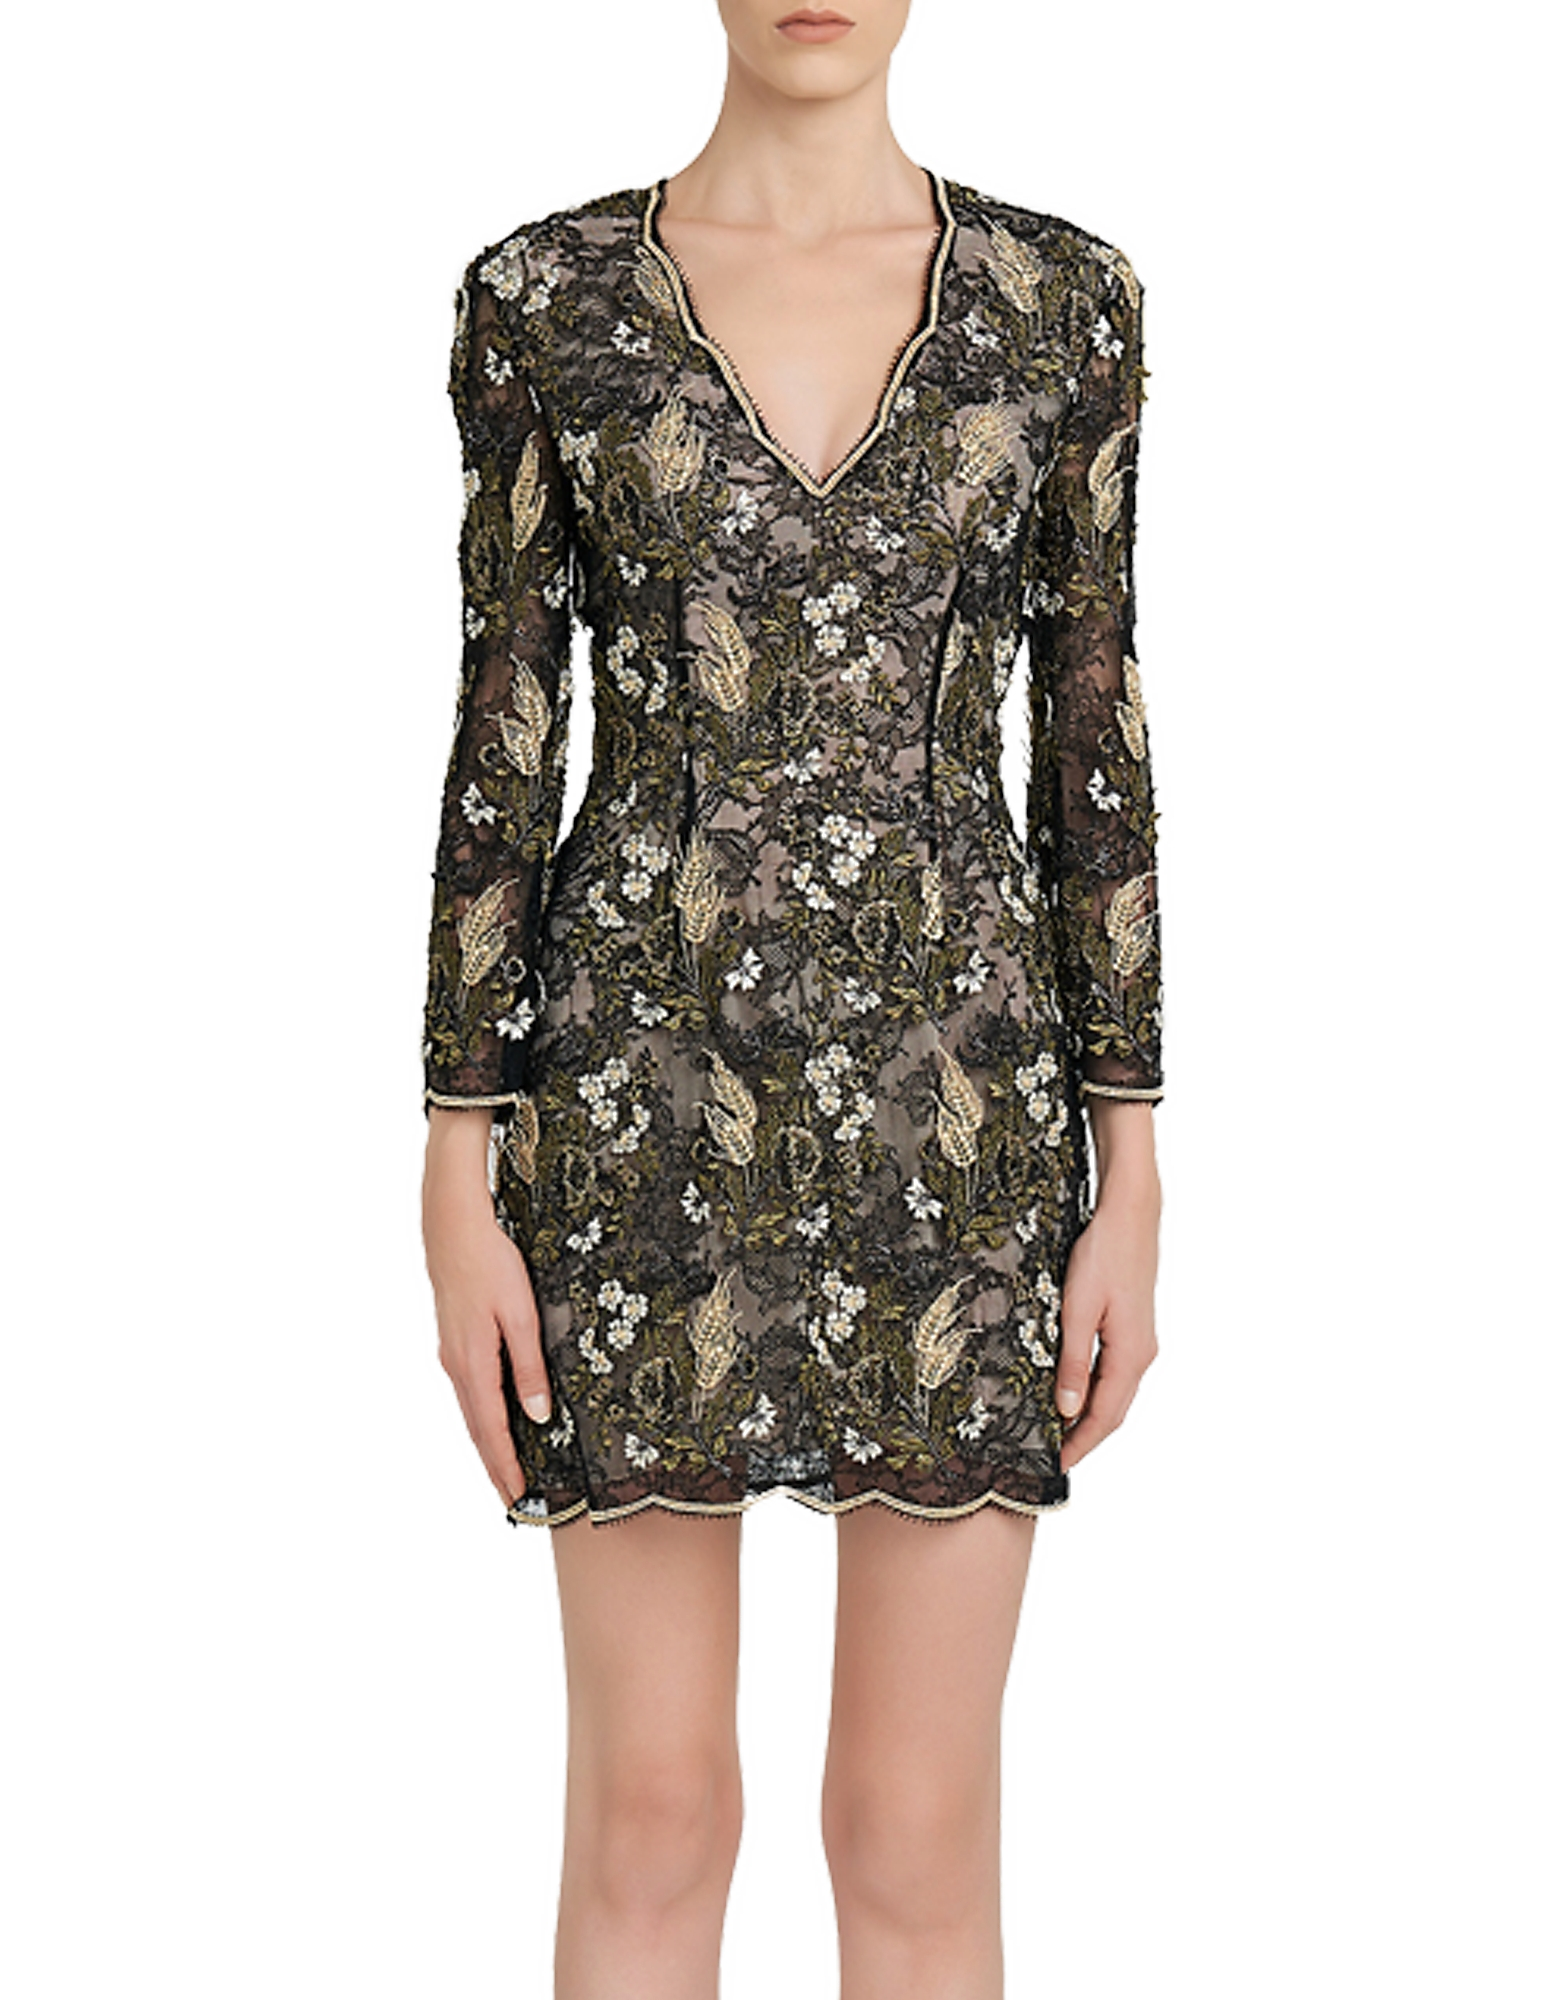 Cocktail Looks Black and Gold Embroidered Lace Dress